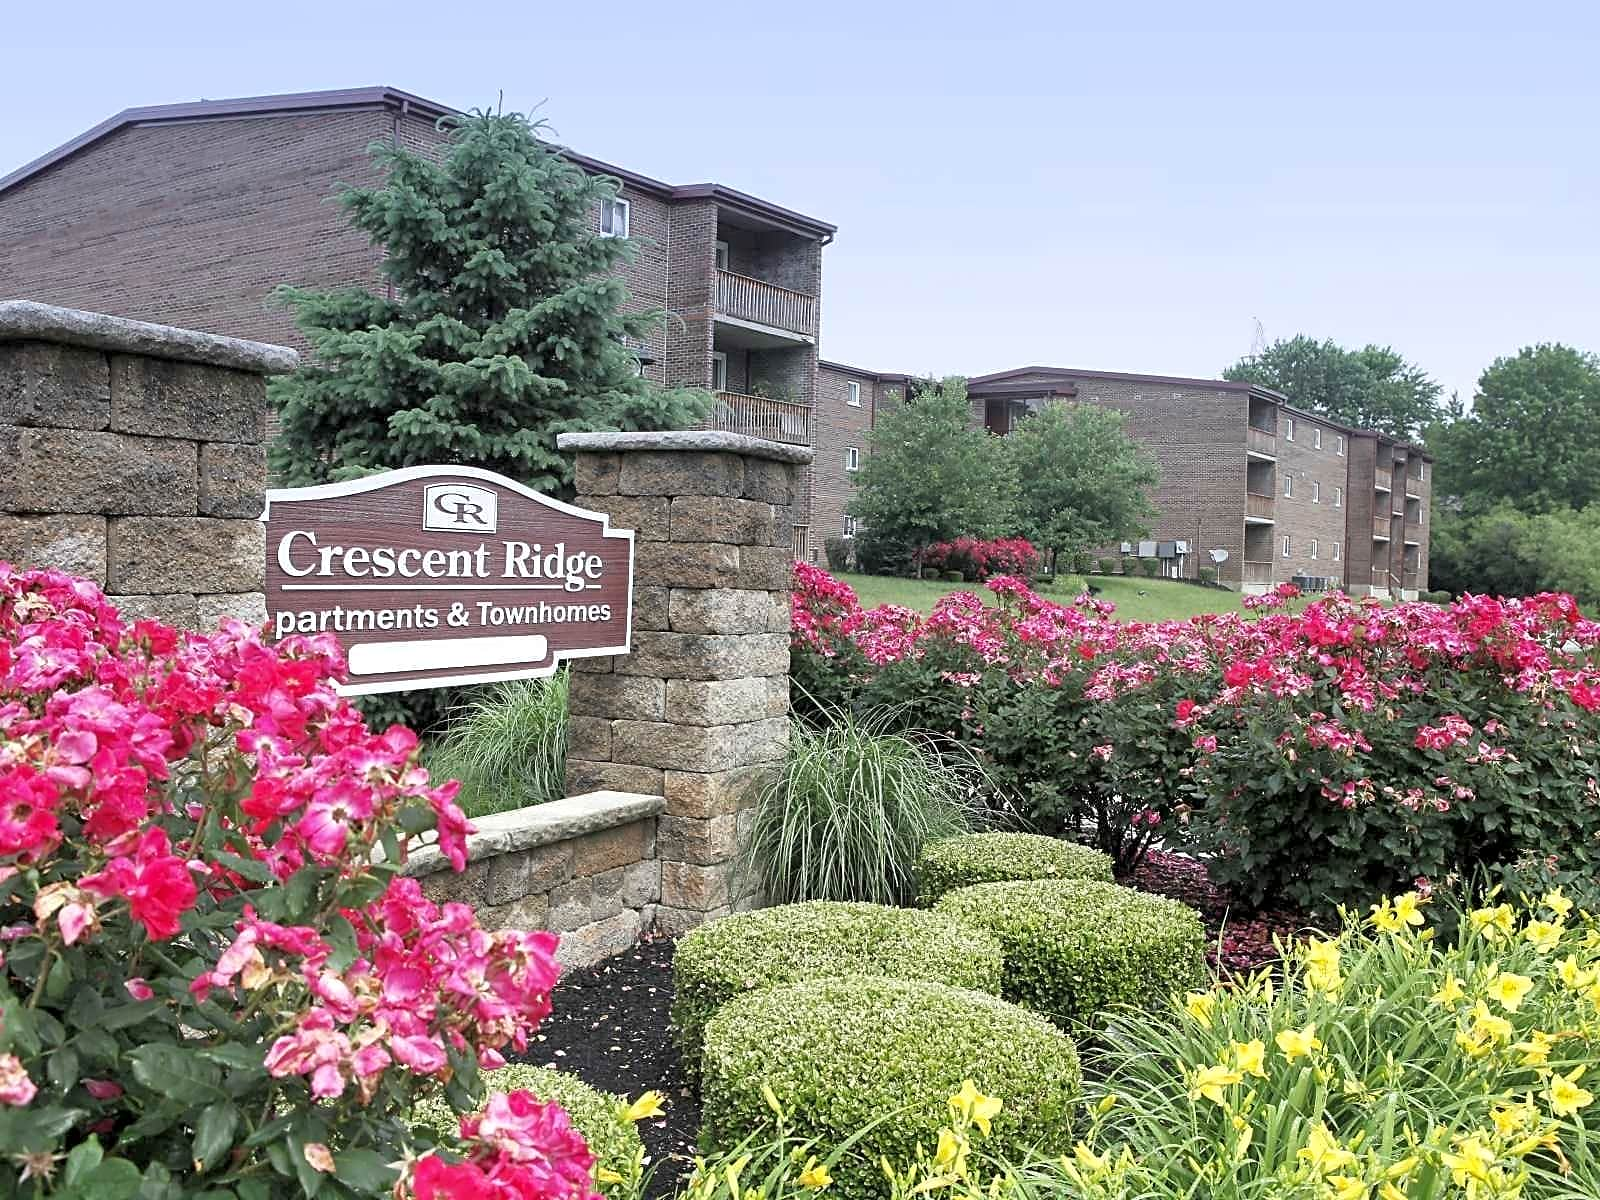 Crescent Ridge Apartments Crescent Springs Ky 41017